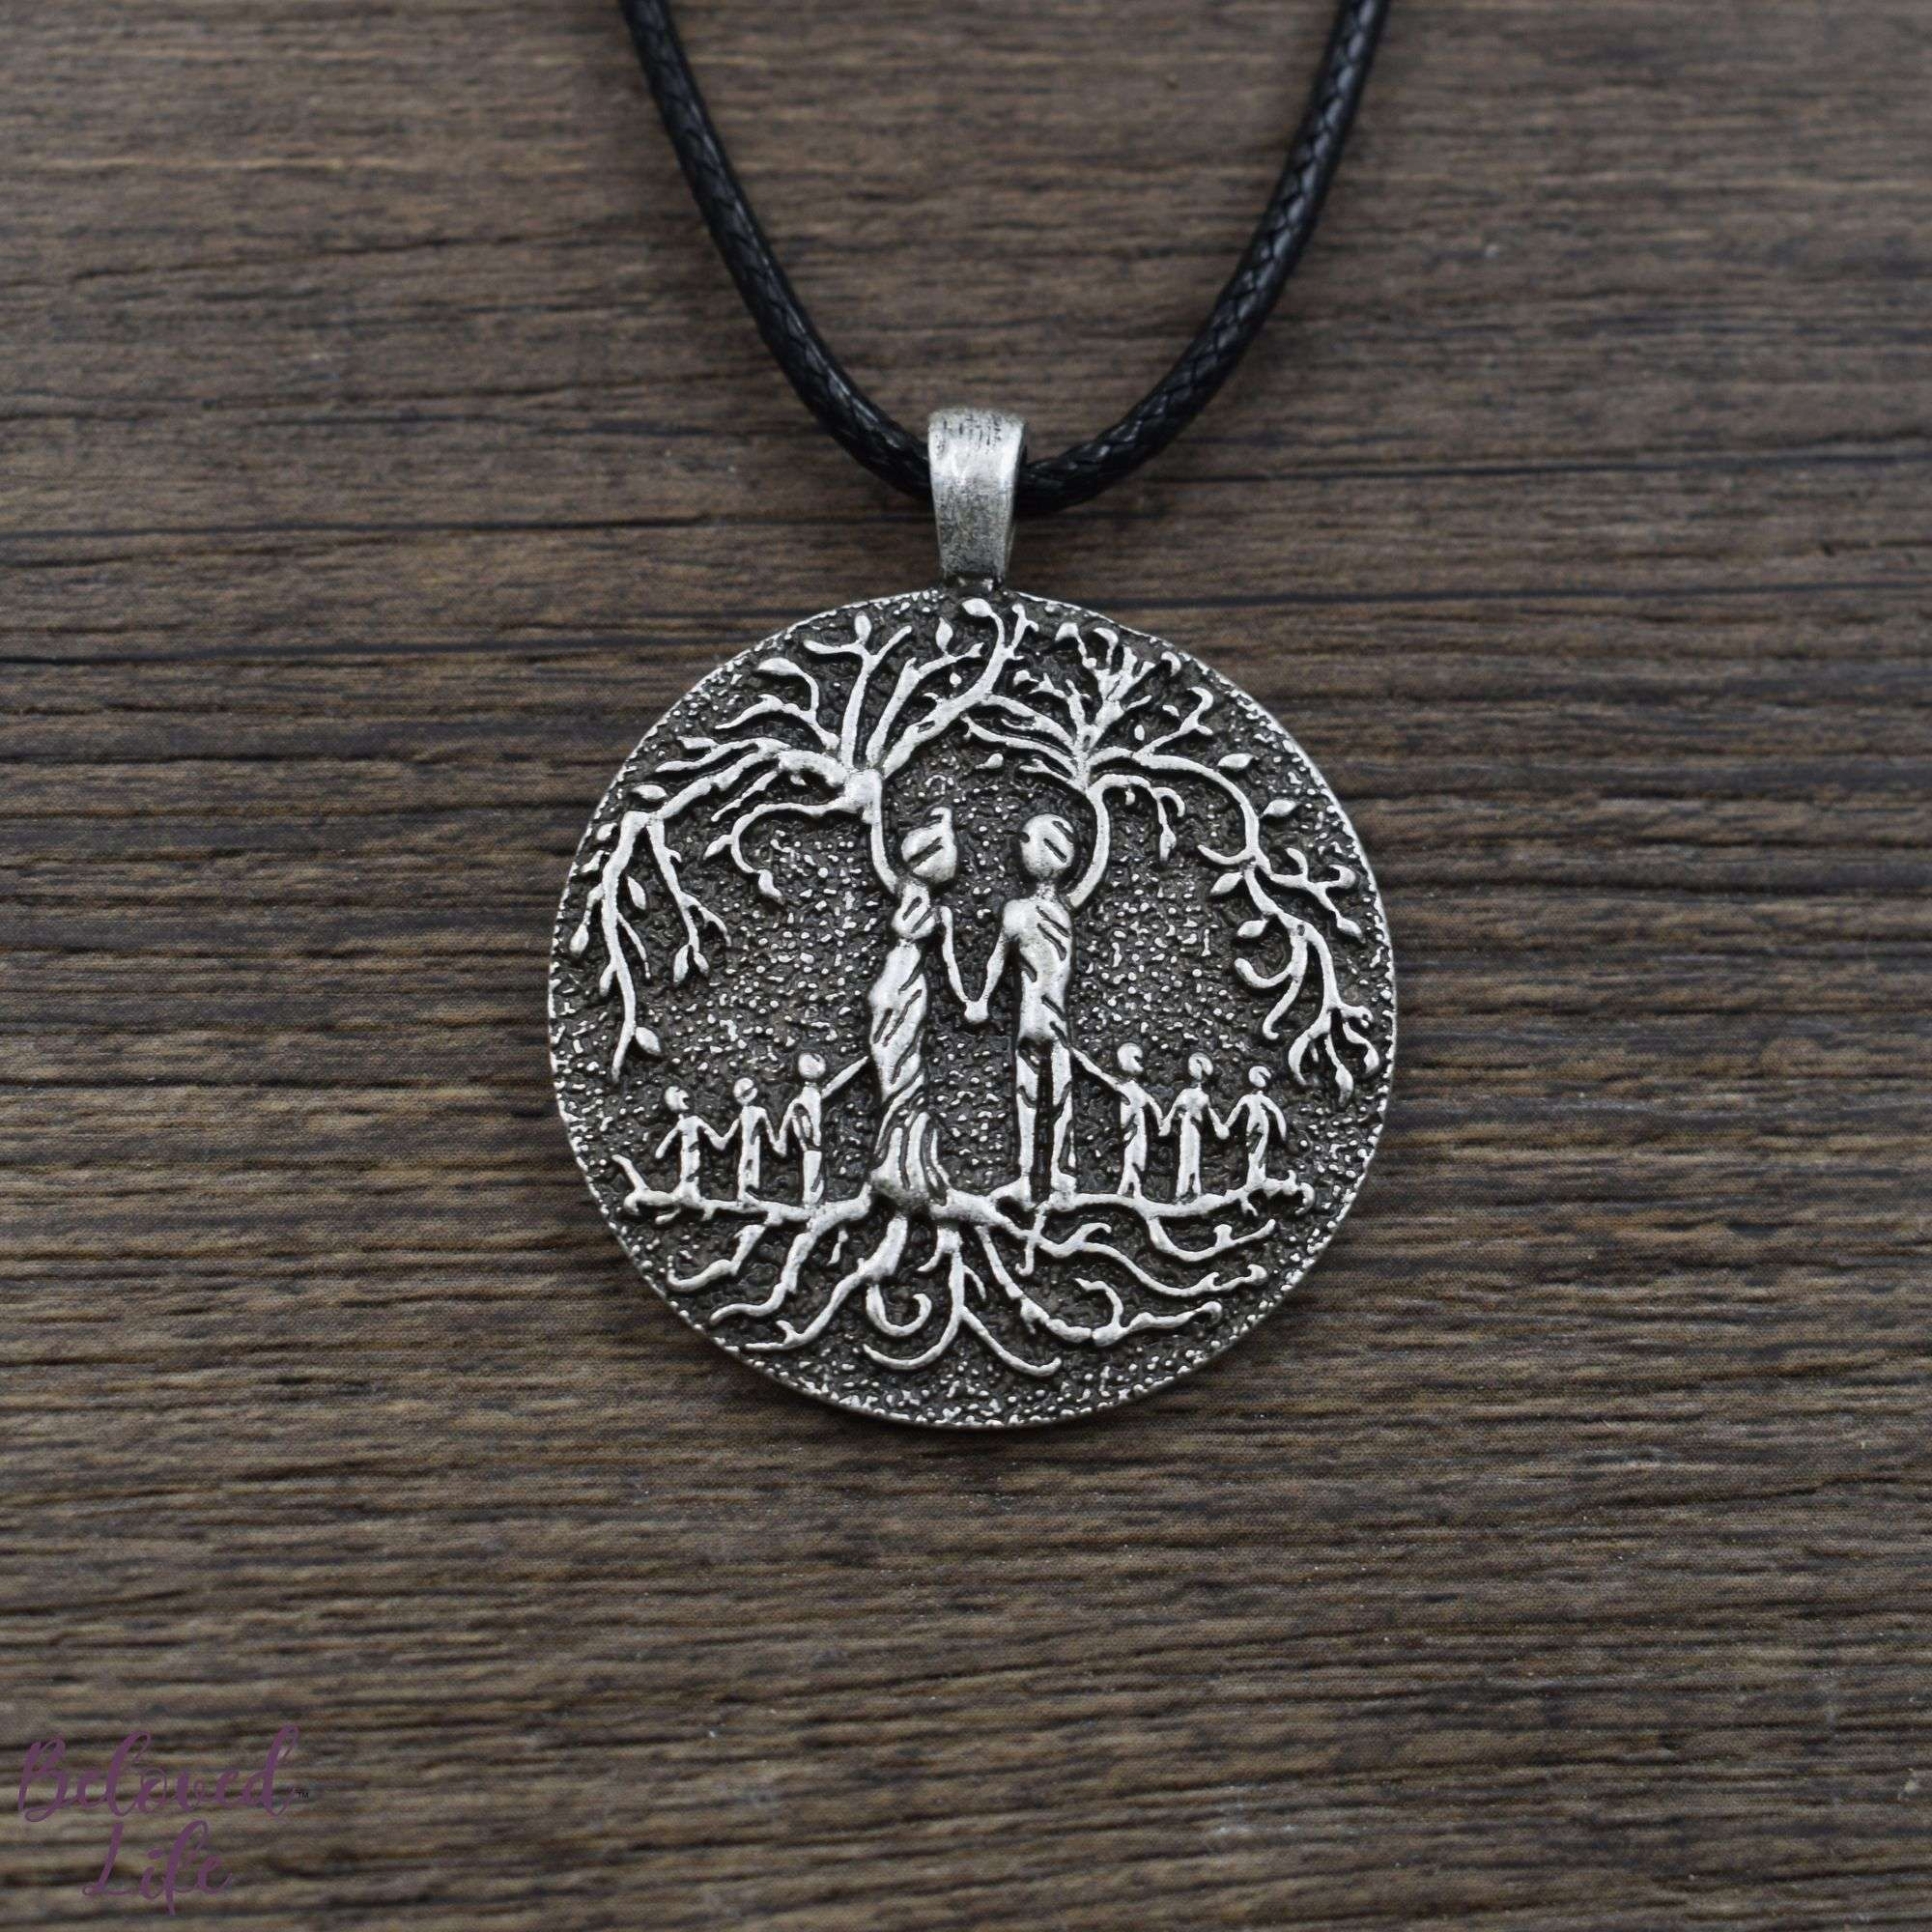 Beloved Life Jewelry: Parents & 6 Child 'Tree of Life' Pendant Necklace [Silver]